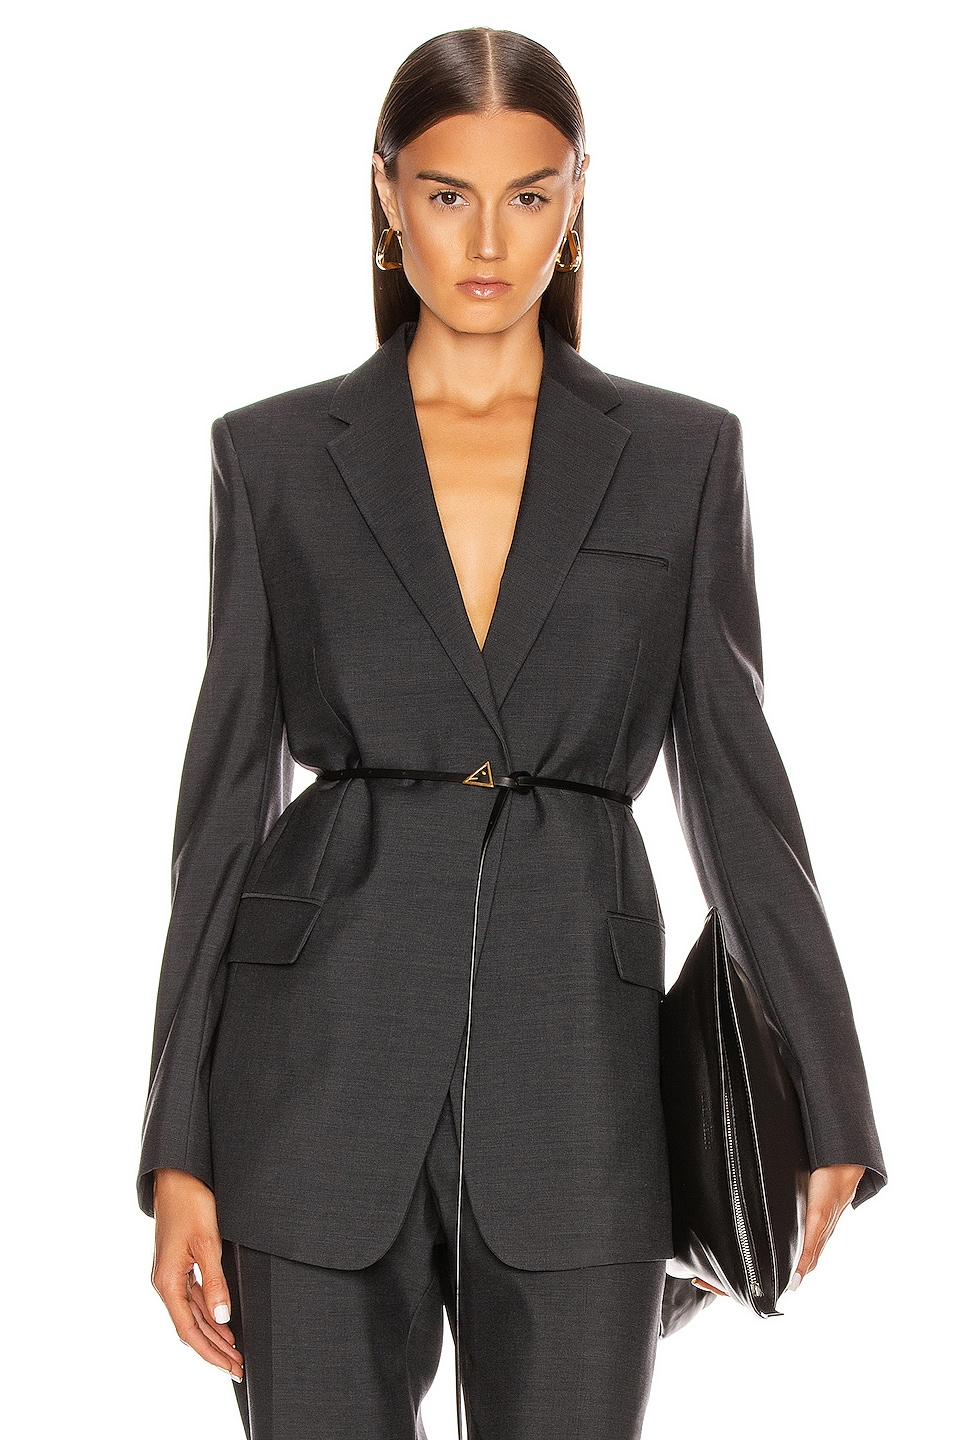 Image 1 of Bottega Veneta Tailored Blazer in Charcoal Melange